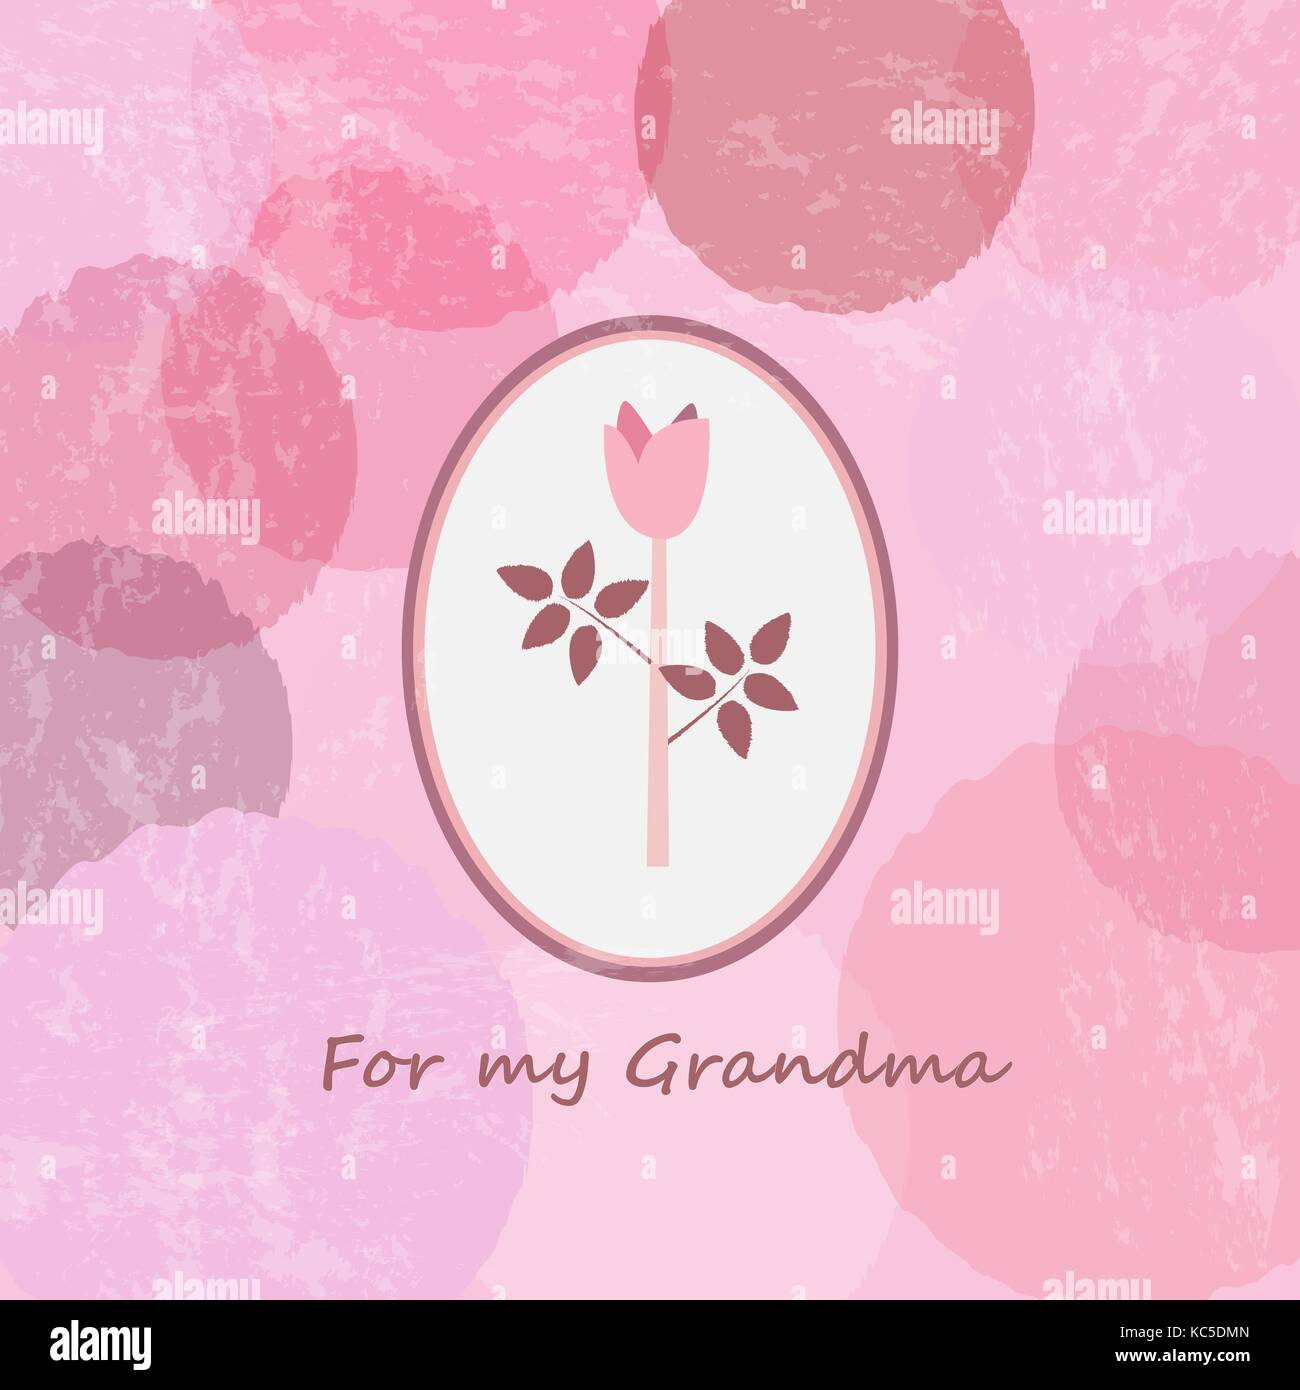 Happy grandparents day for my grandma vintage happy grandmother happy grandparents day for my grandma vintage happy grandmother cardtypographical greeting cardrfect for print t shirts cups postcards card m4hsunfo